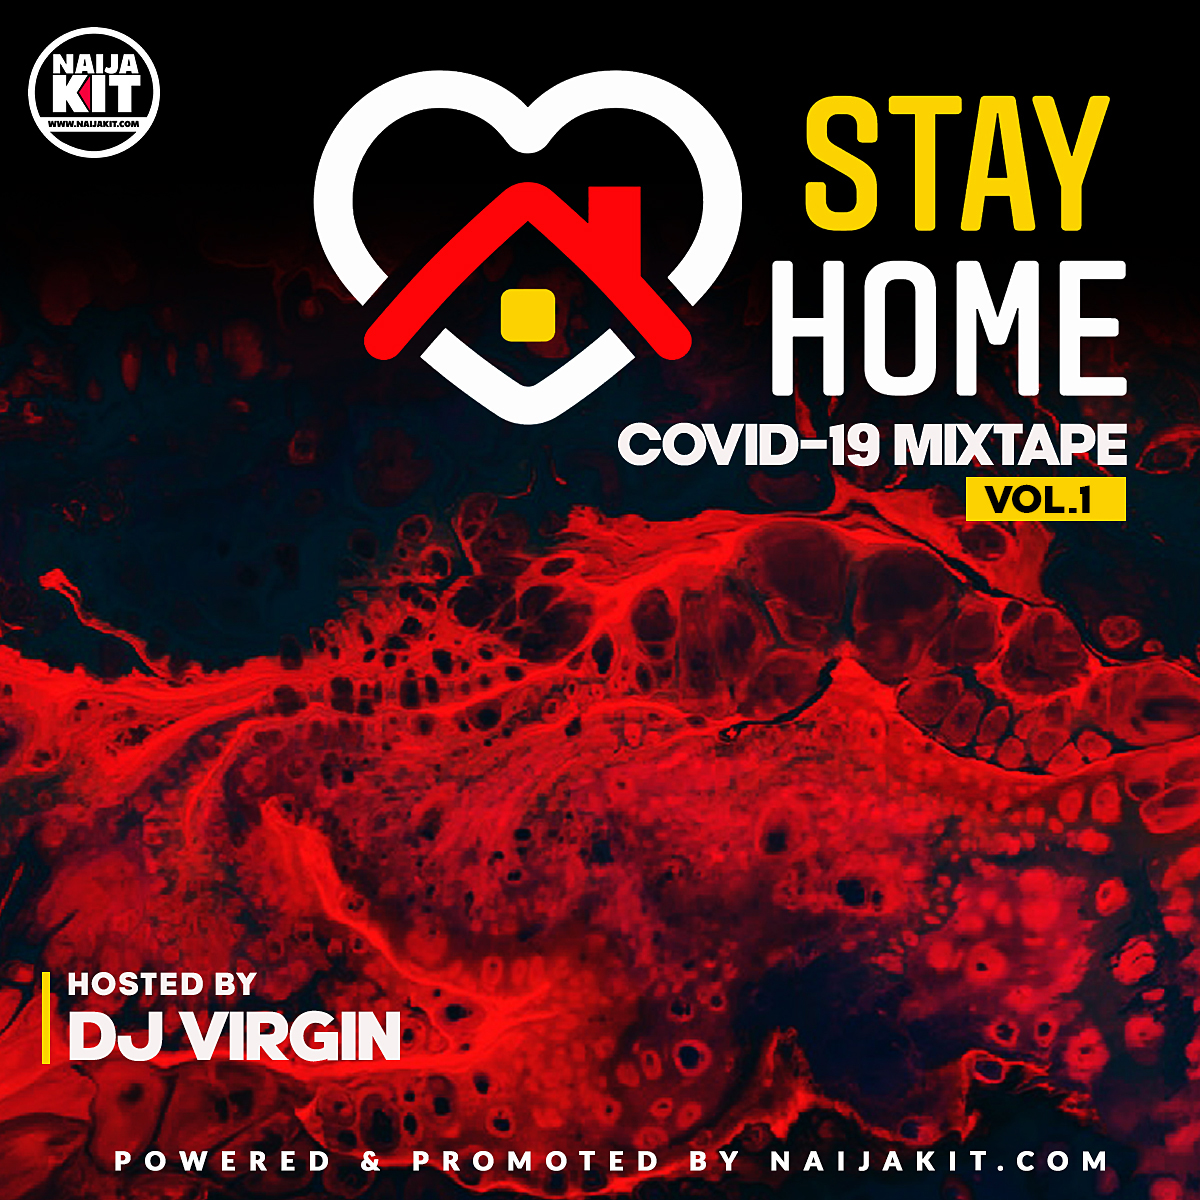 DJ Virgin - Covid-19 Stay Home Mixtape (Vol. 1)